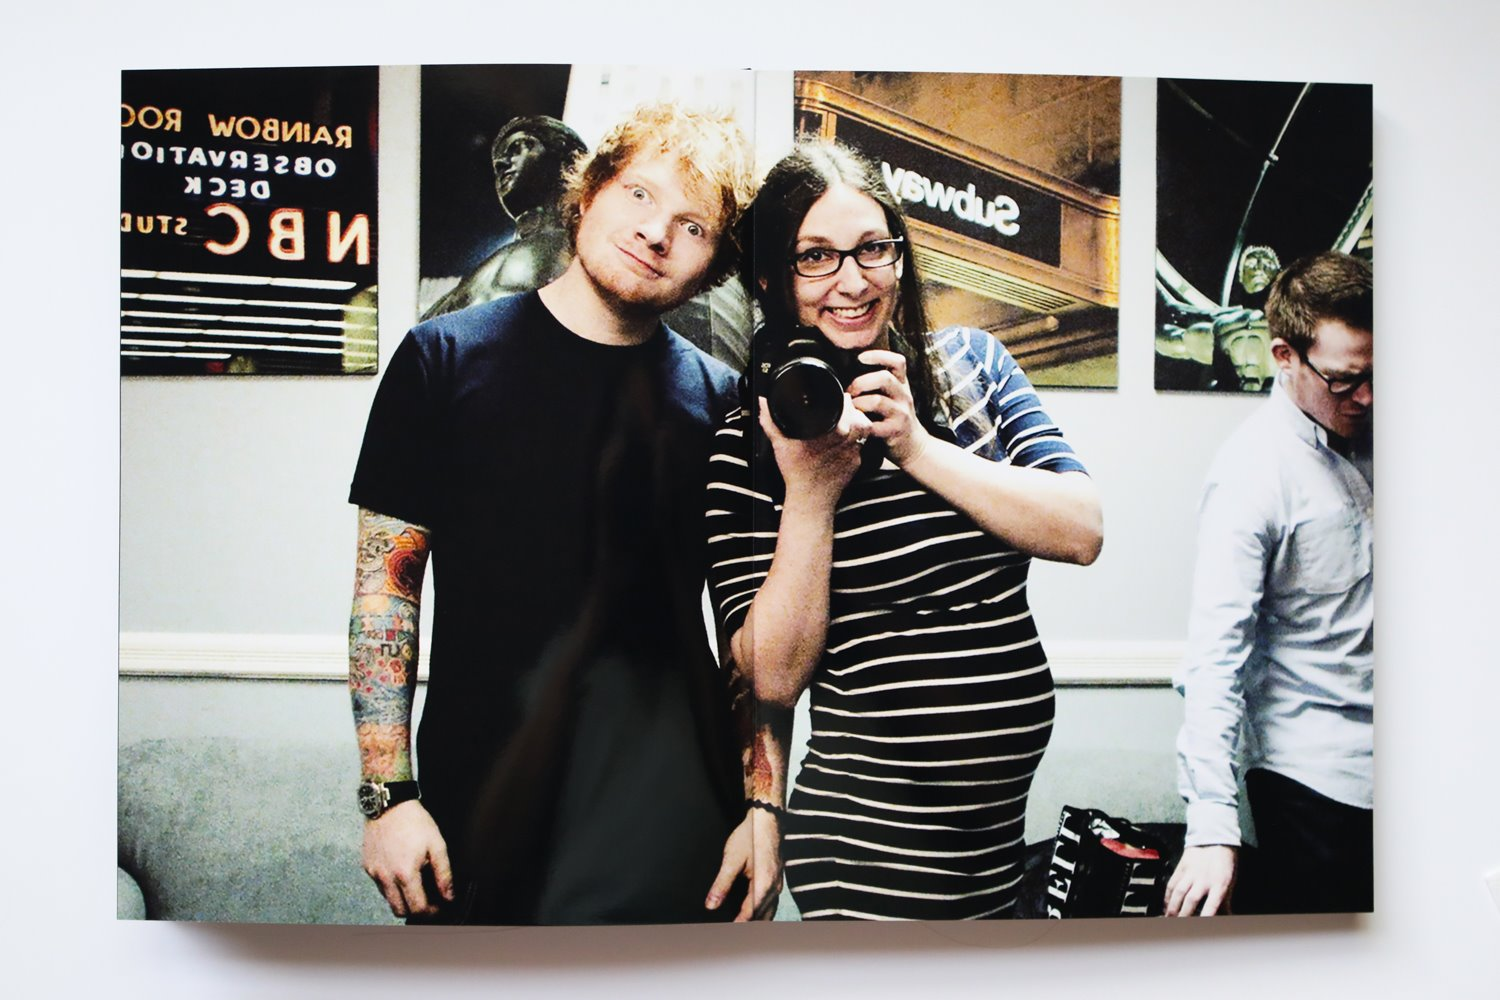 Behind-the-Scenes: Diana Levine and Ed Sheeran. 4 months pregnant!